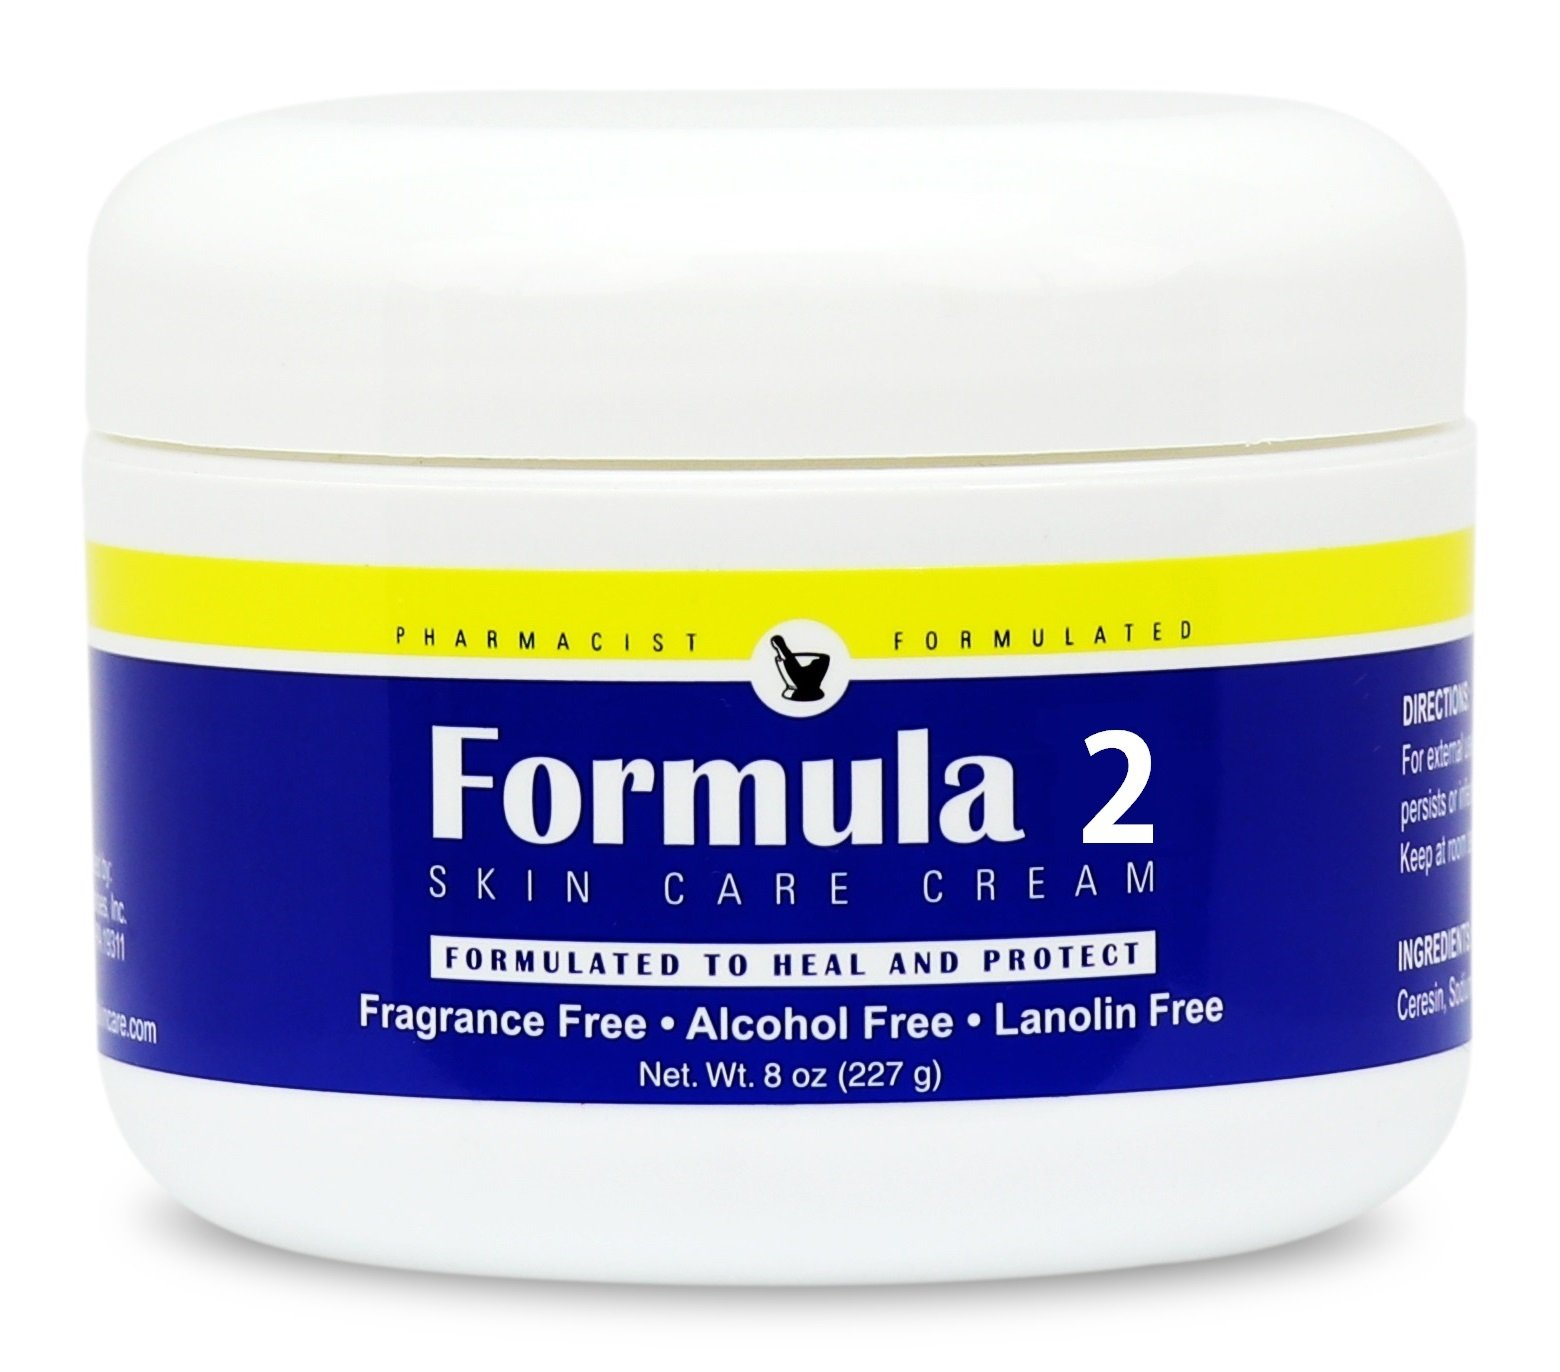 Formula 2 Skin Care Cream | For Very Dry Skin Resulting From Diabetic Dry Skin, Eczema, Psoriasis, Dermatitis, Rashes, Burns. For hands, feet, buttocks, and all over. Pharmacist Formulated. by Formula 2 Skin Care